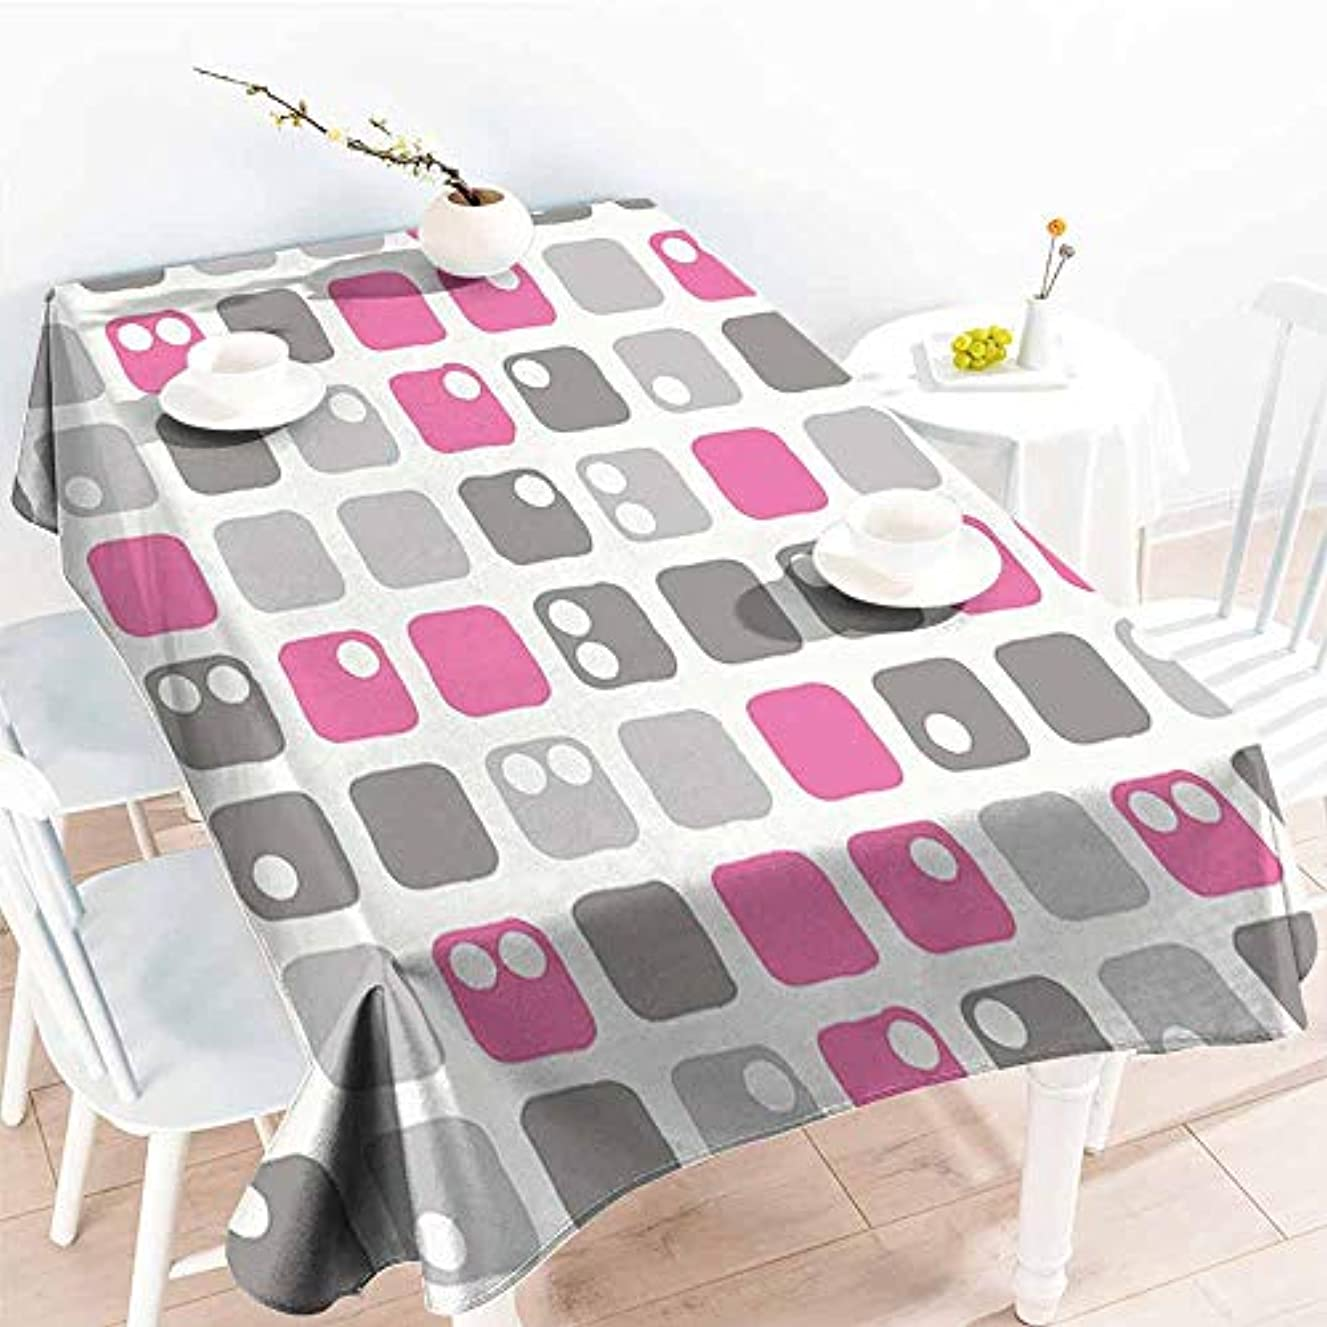 Onefzc Anti-Fading Tablecloths,Geometric Square Shapes with Dots in Pastel Color Palette Ornamental Pattern Image,Table Cover for Kitchen Dinning Tabletop Decoratio,W54x90L Pink White Grey